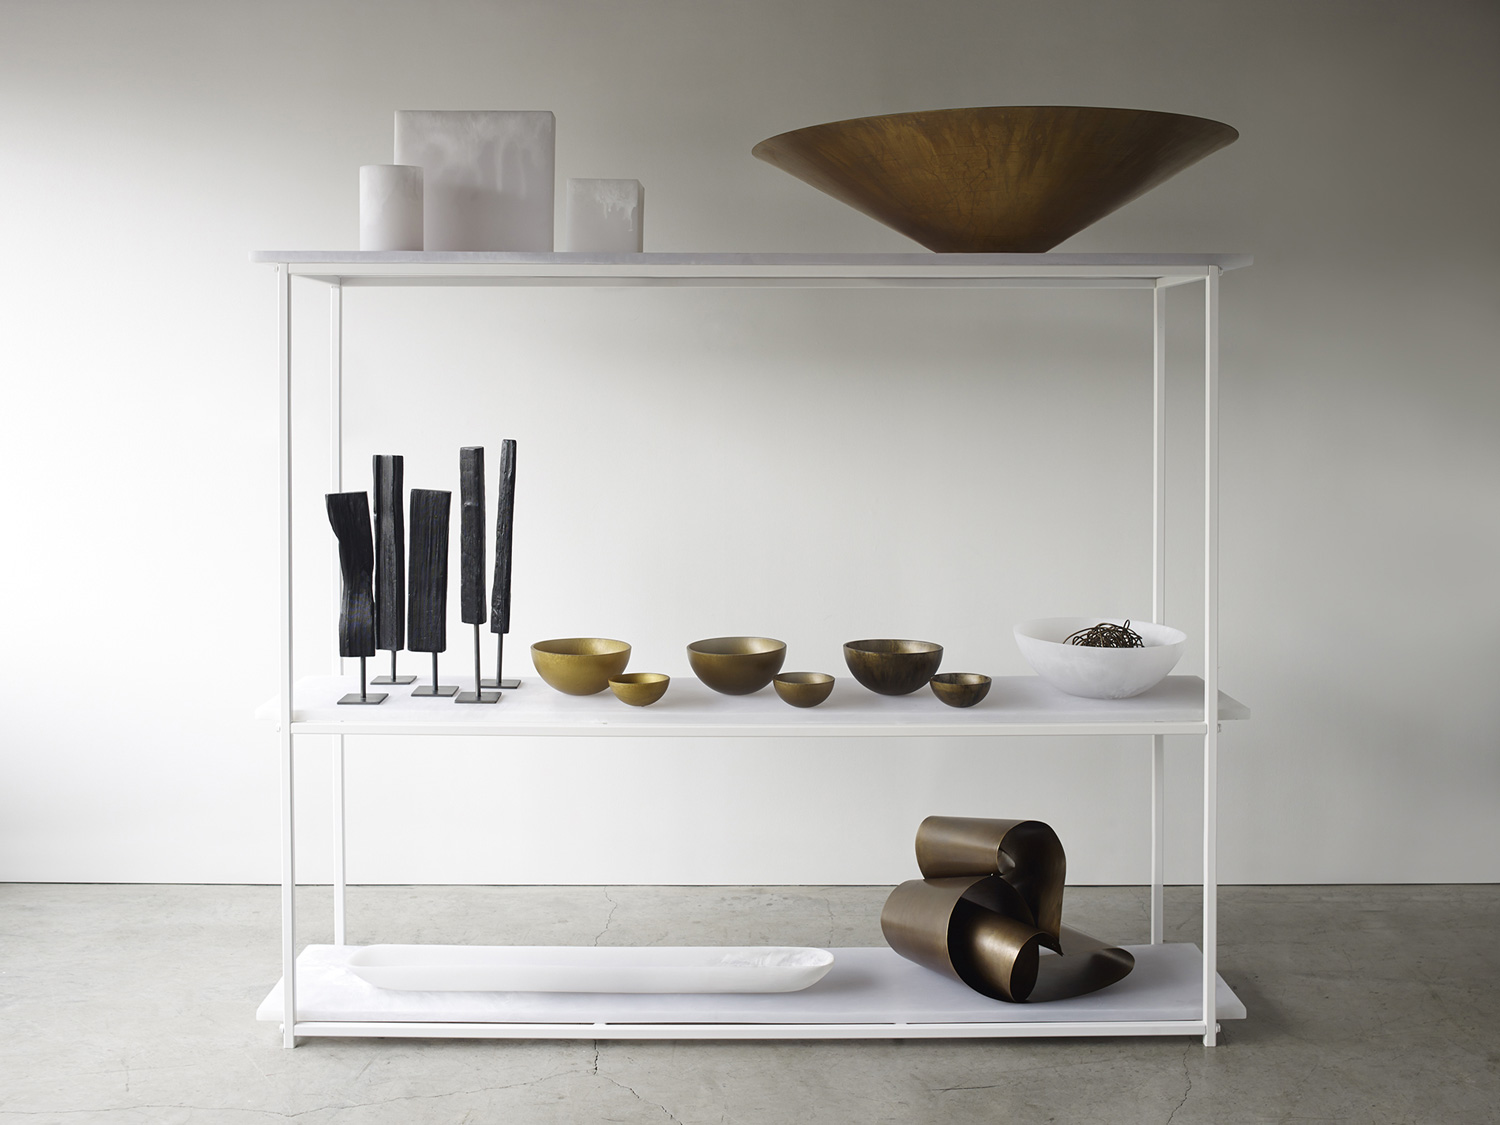 Shelving unit by Martha Sturdy for MandO | Yellowtrace